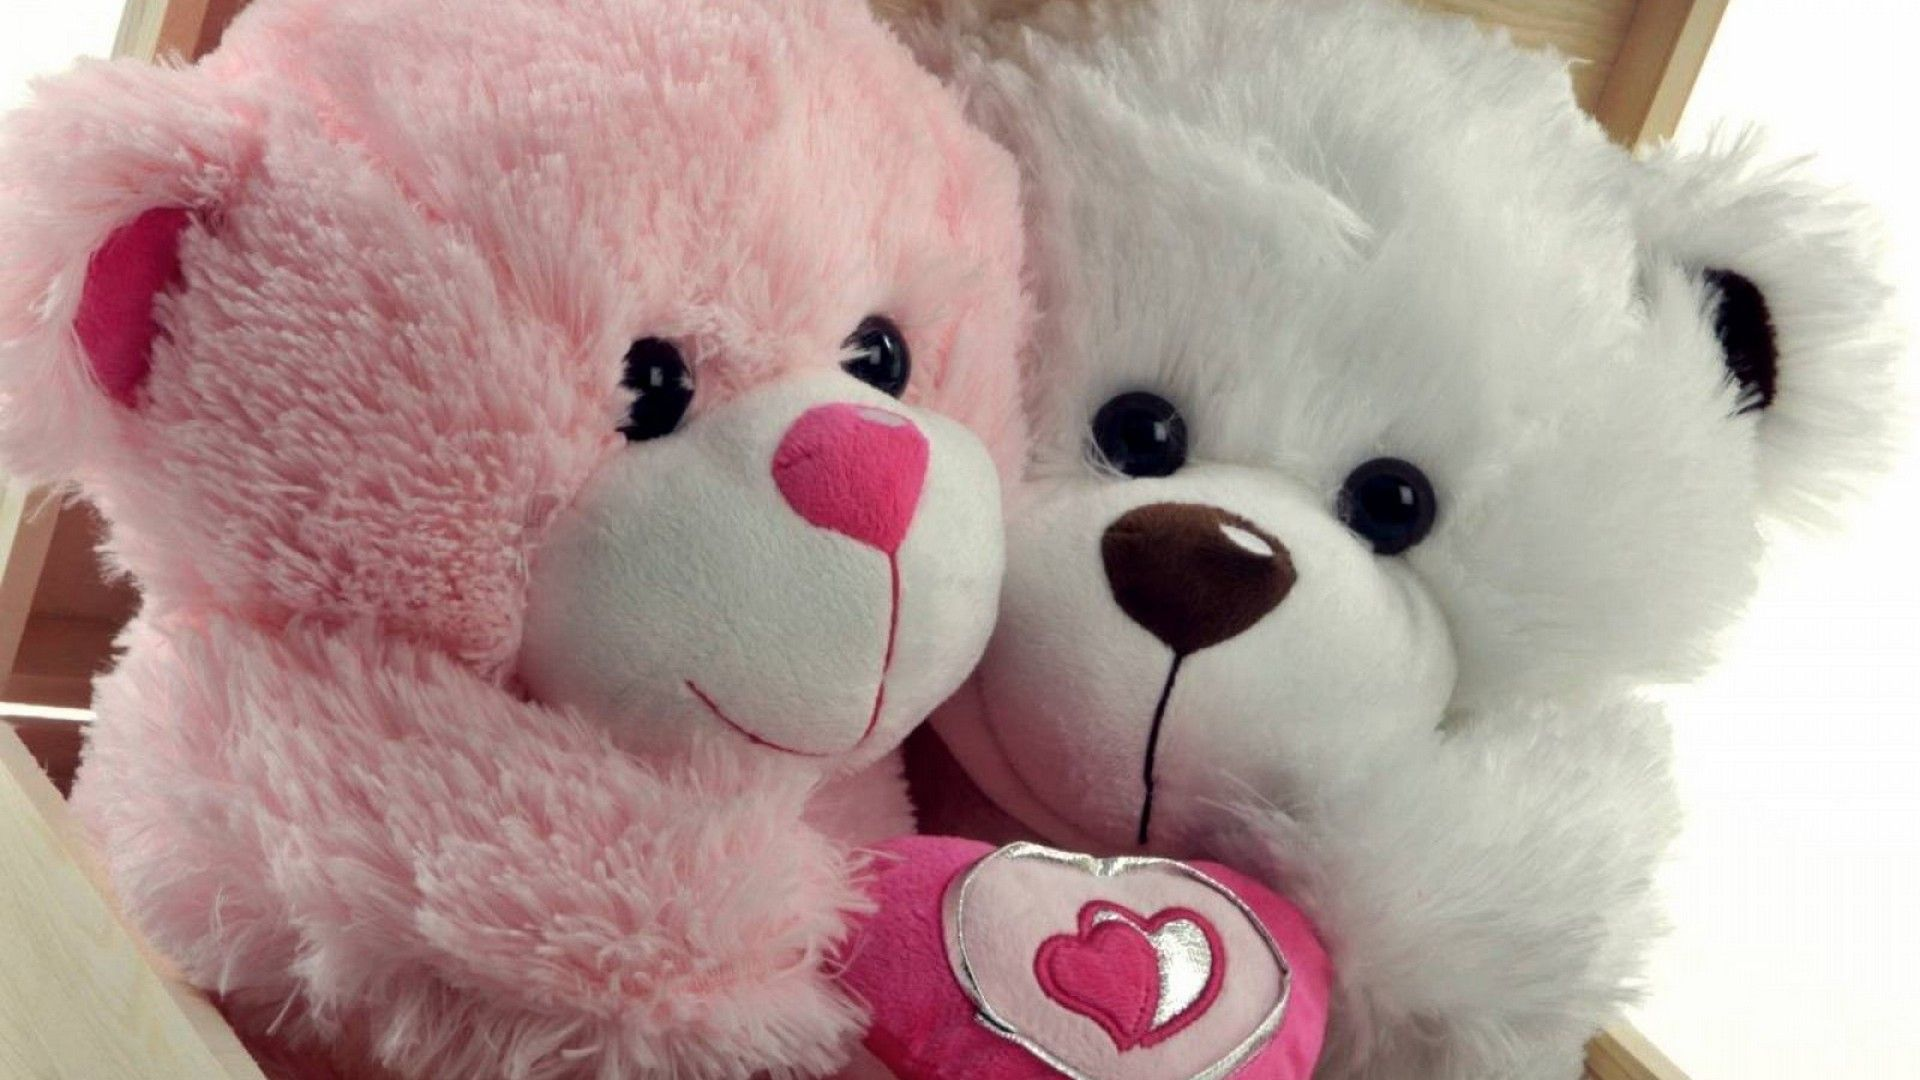 Giant Teddy Bear Desktop Backgrounds 2021 Live Wallpaper Hd Teddy Bear Wallpaper Teddy Day Wallpapers Teddy Day Images